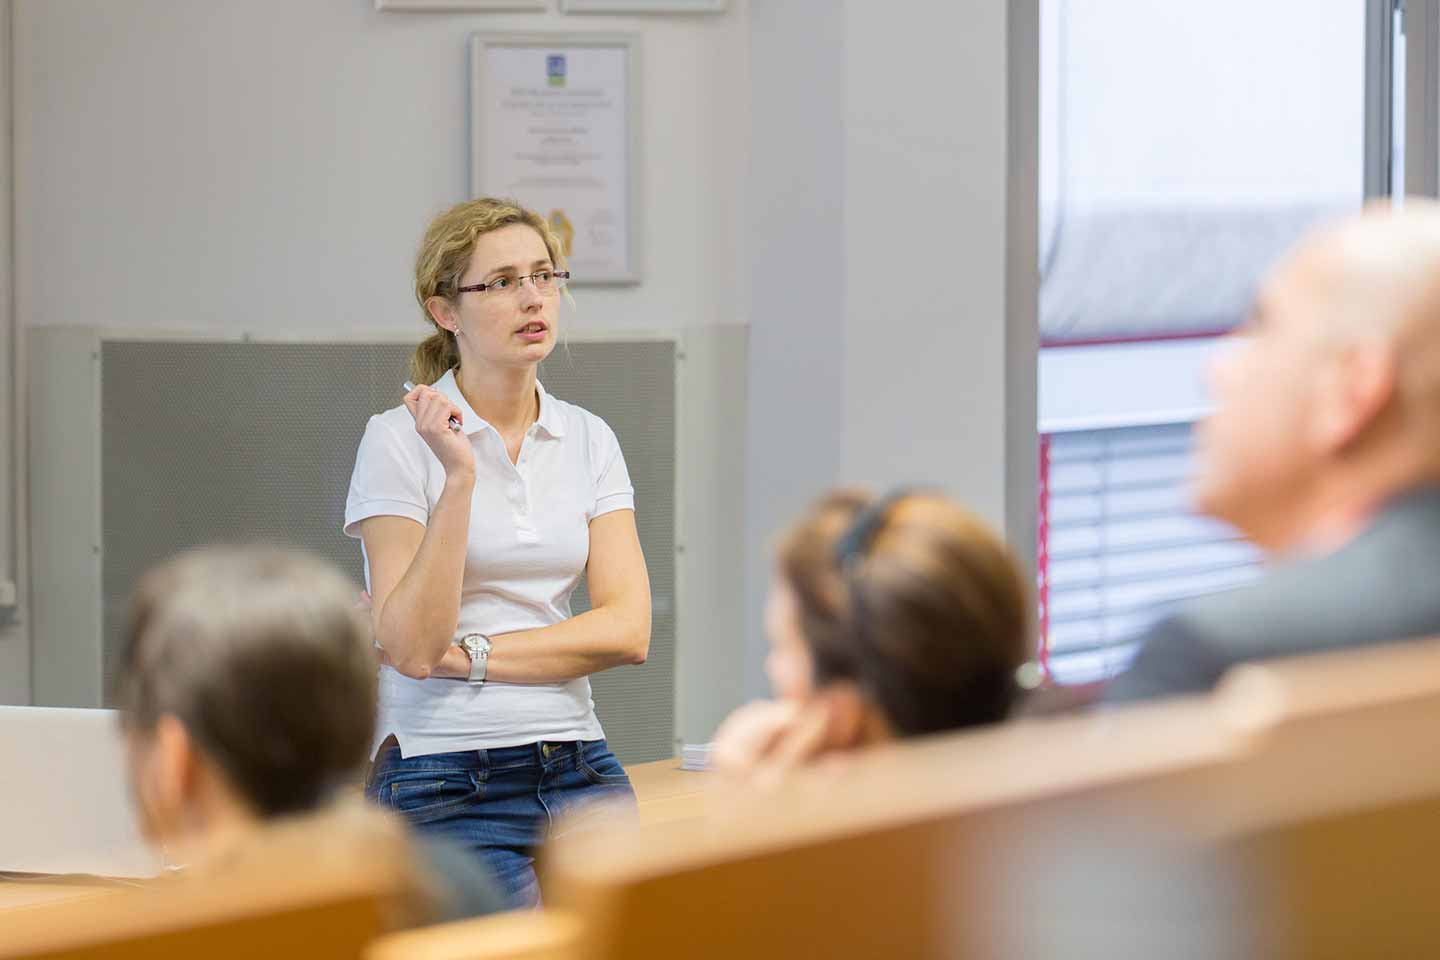 woman in white t-shirt and glasses teaching class